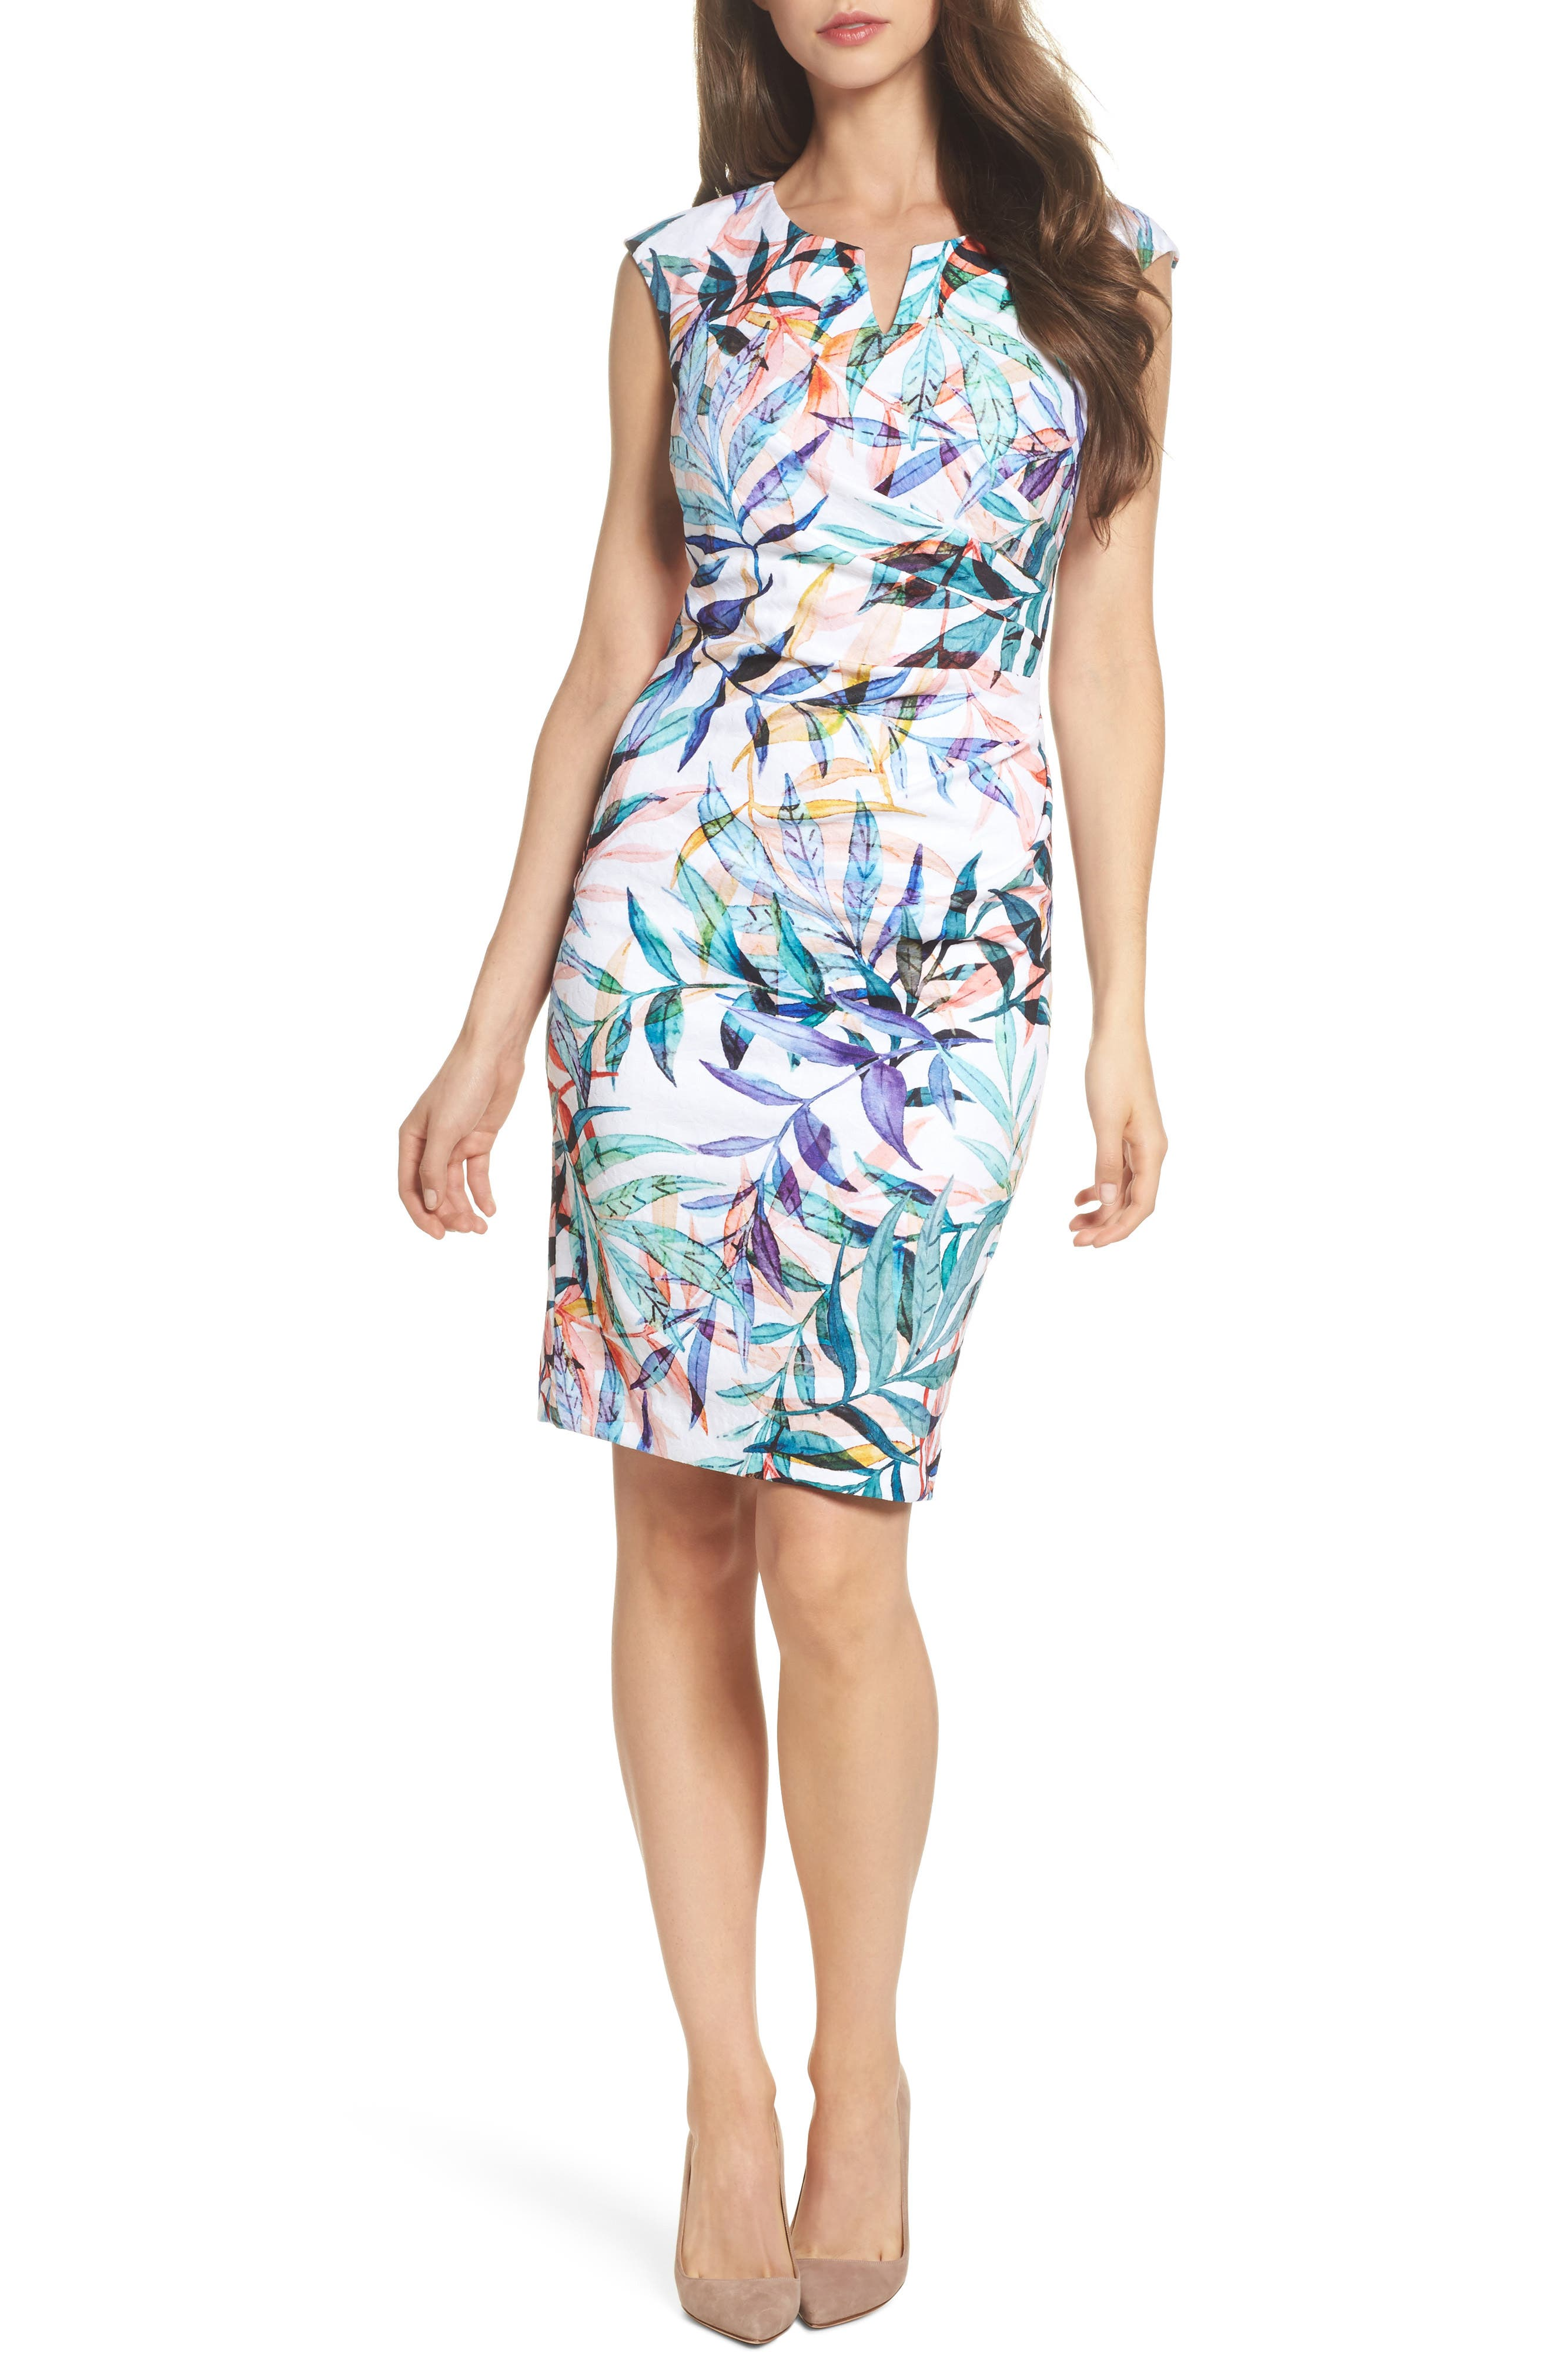 Alternate Image 1 Selected - Adrianna Papell Watercolor Leaves Sheath Dress